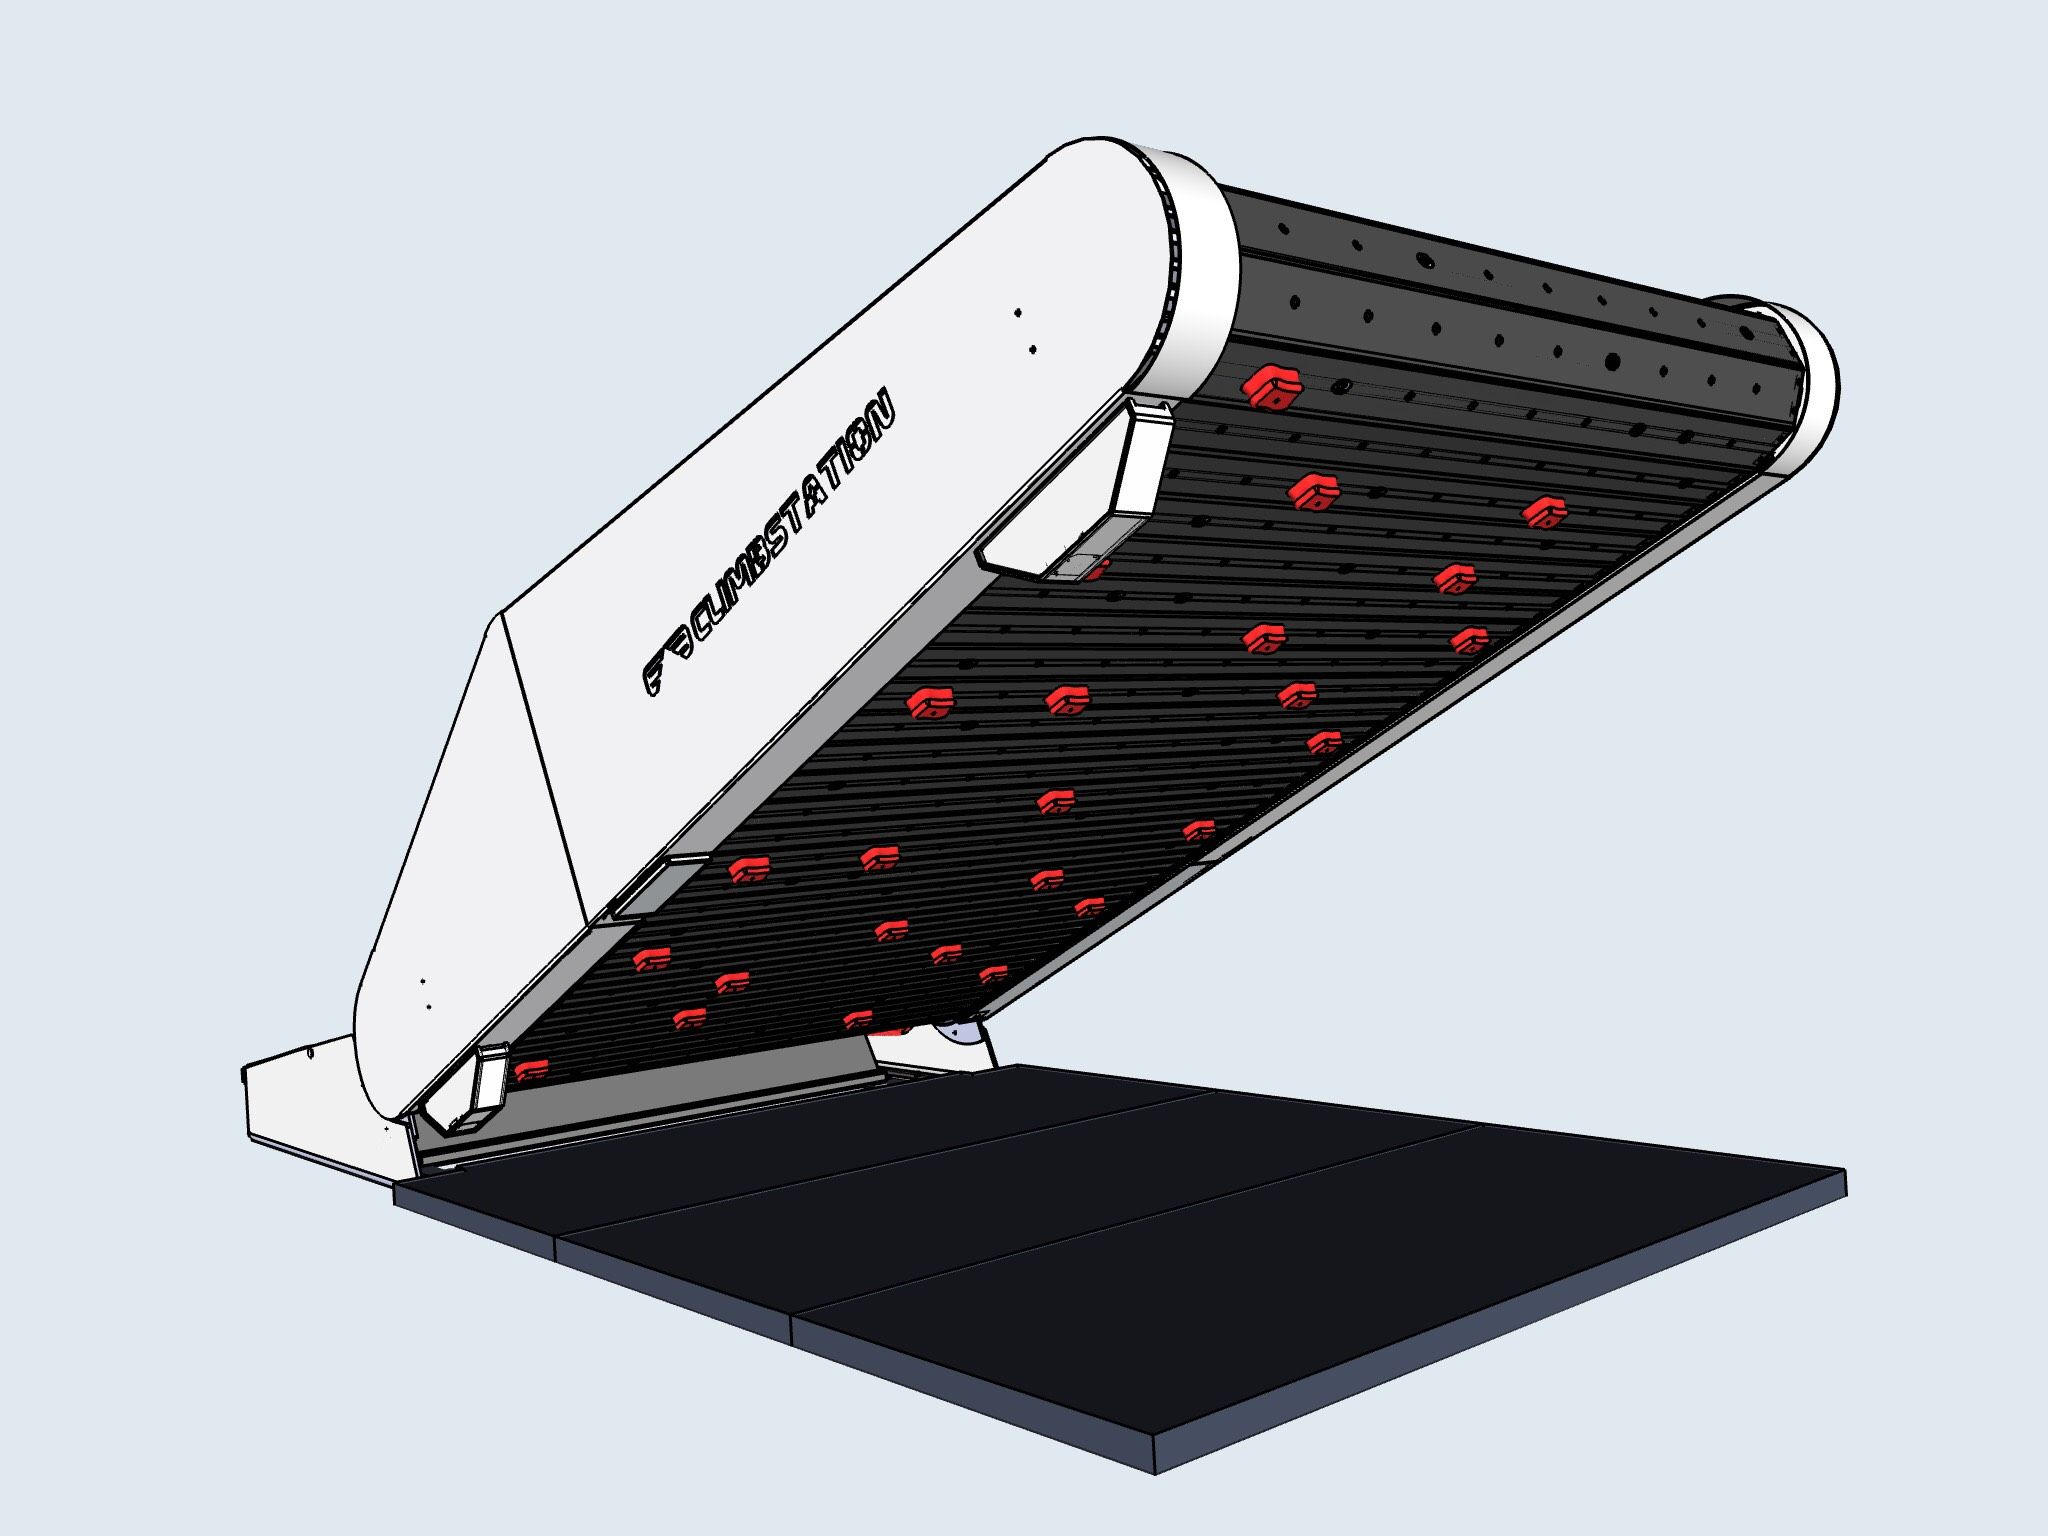 climbstation product concept shapr3d user story_3